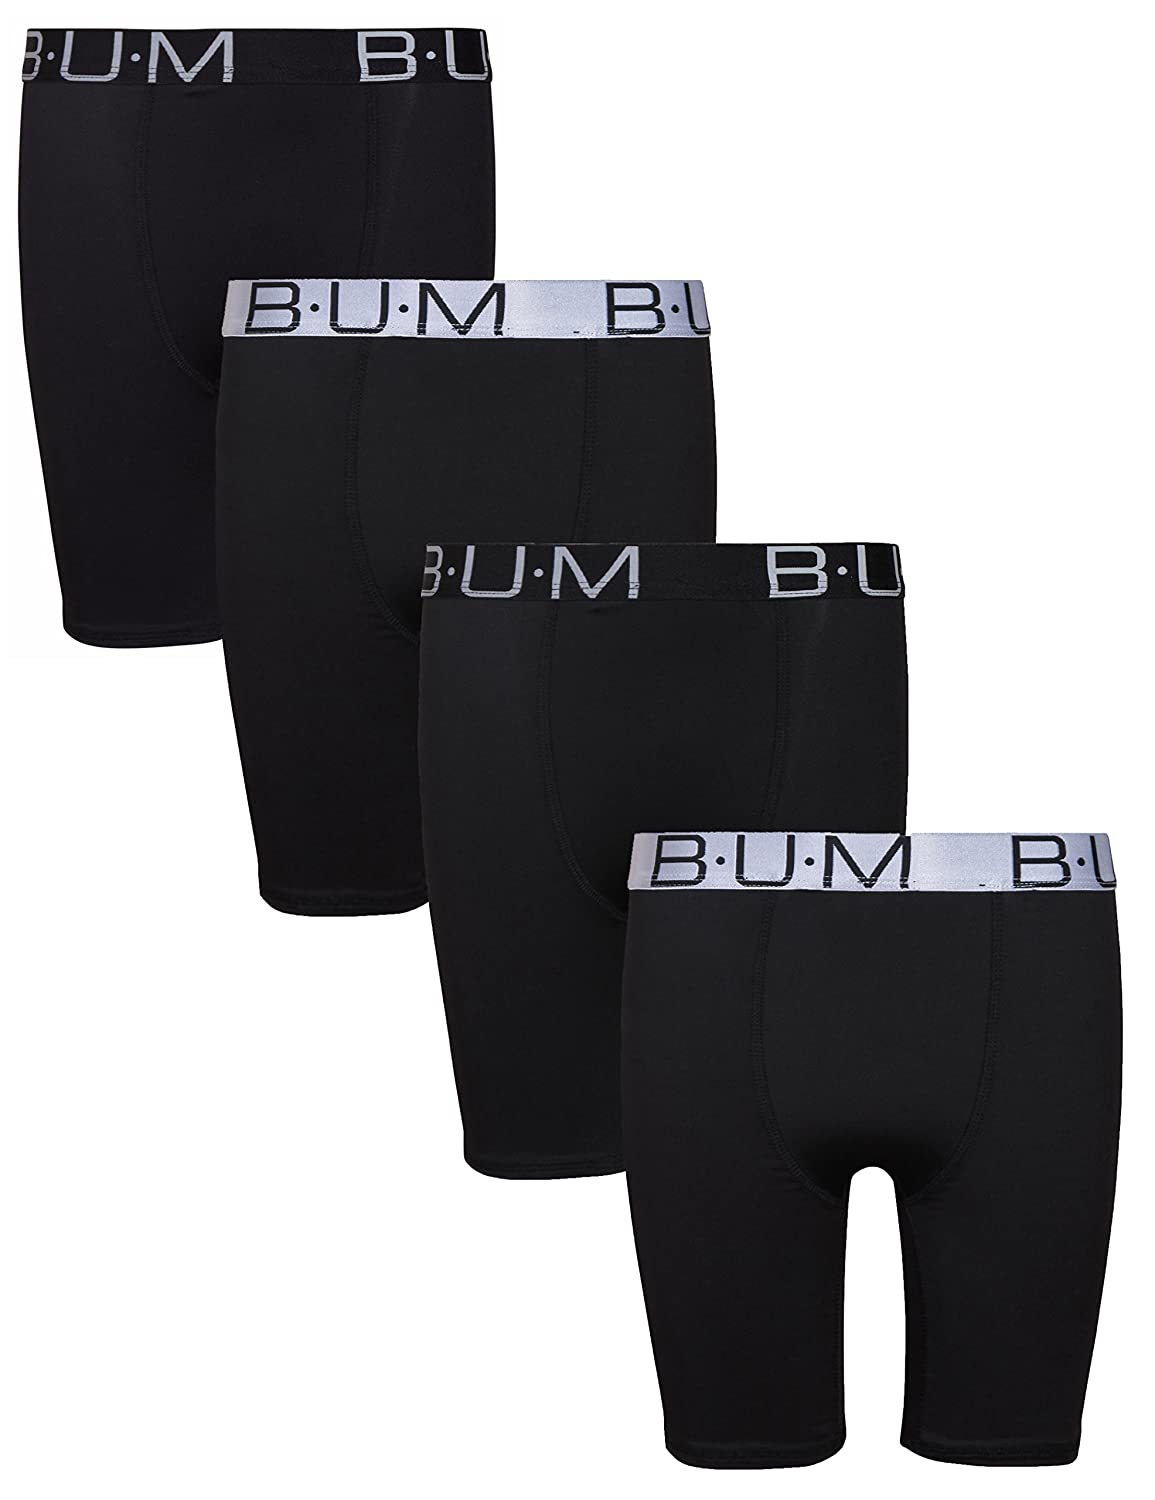 B.U.M. Equipment Boys' Performance Dri-Fit Compression Boxer Briefs (Pack of 4)